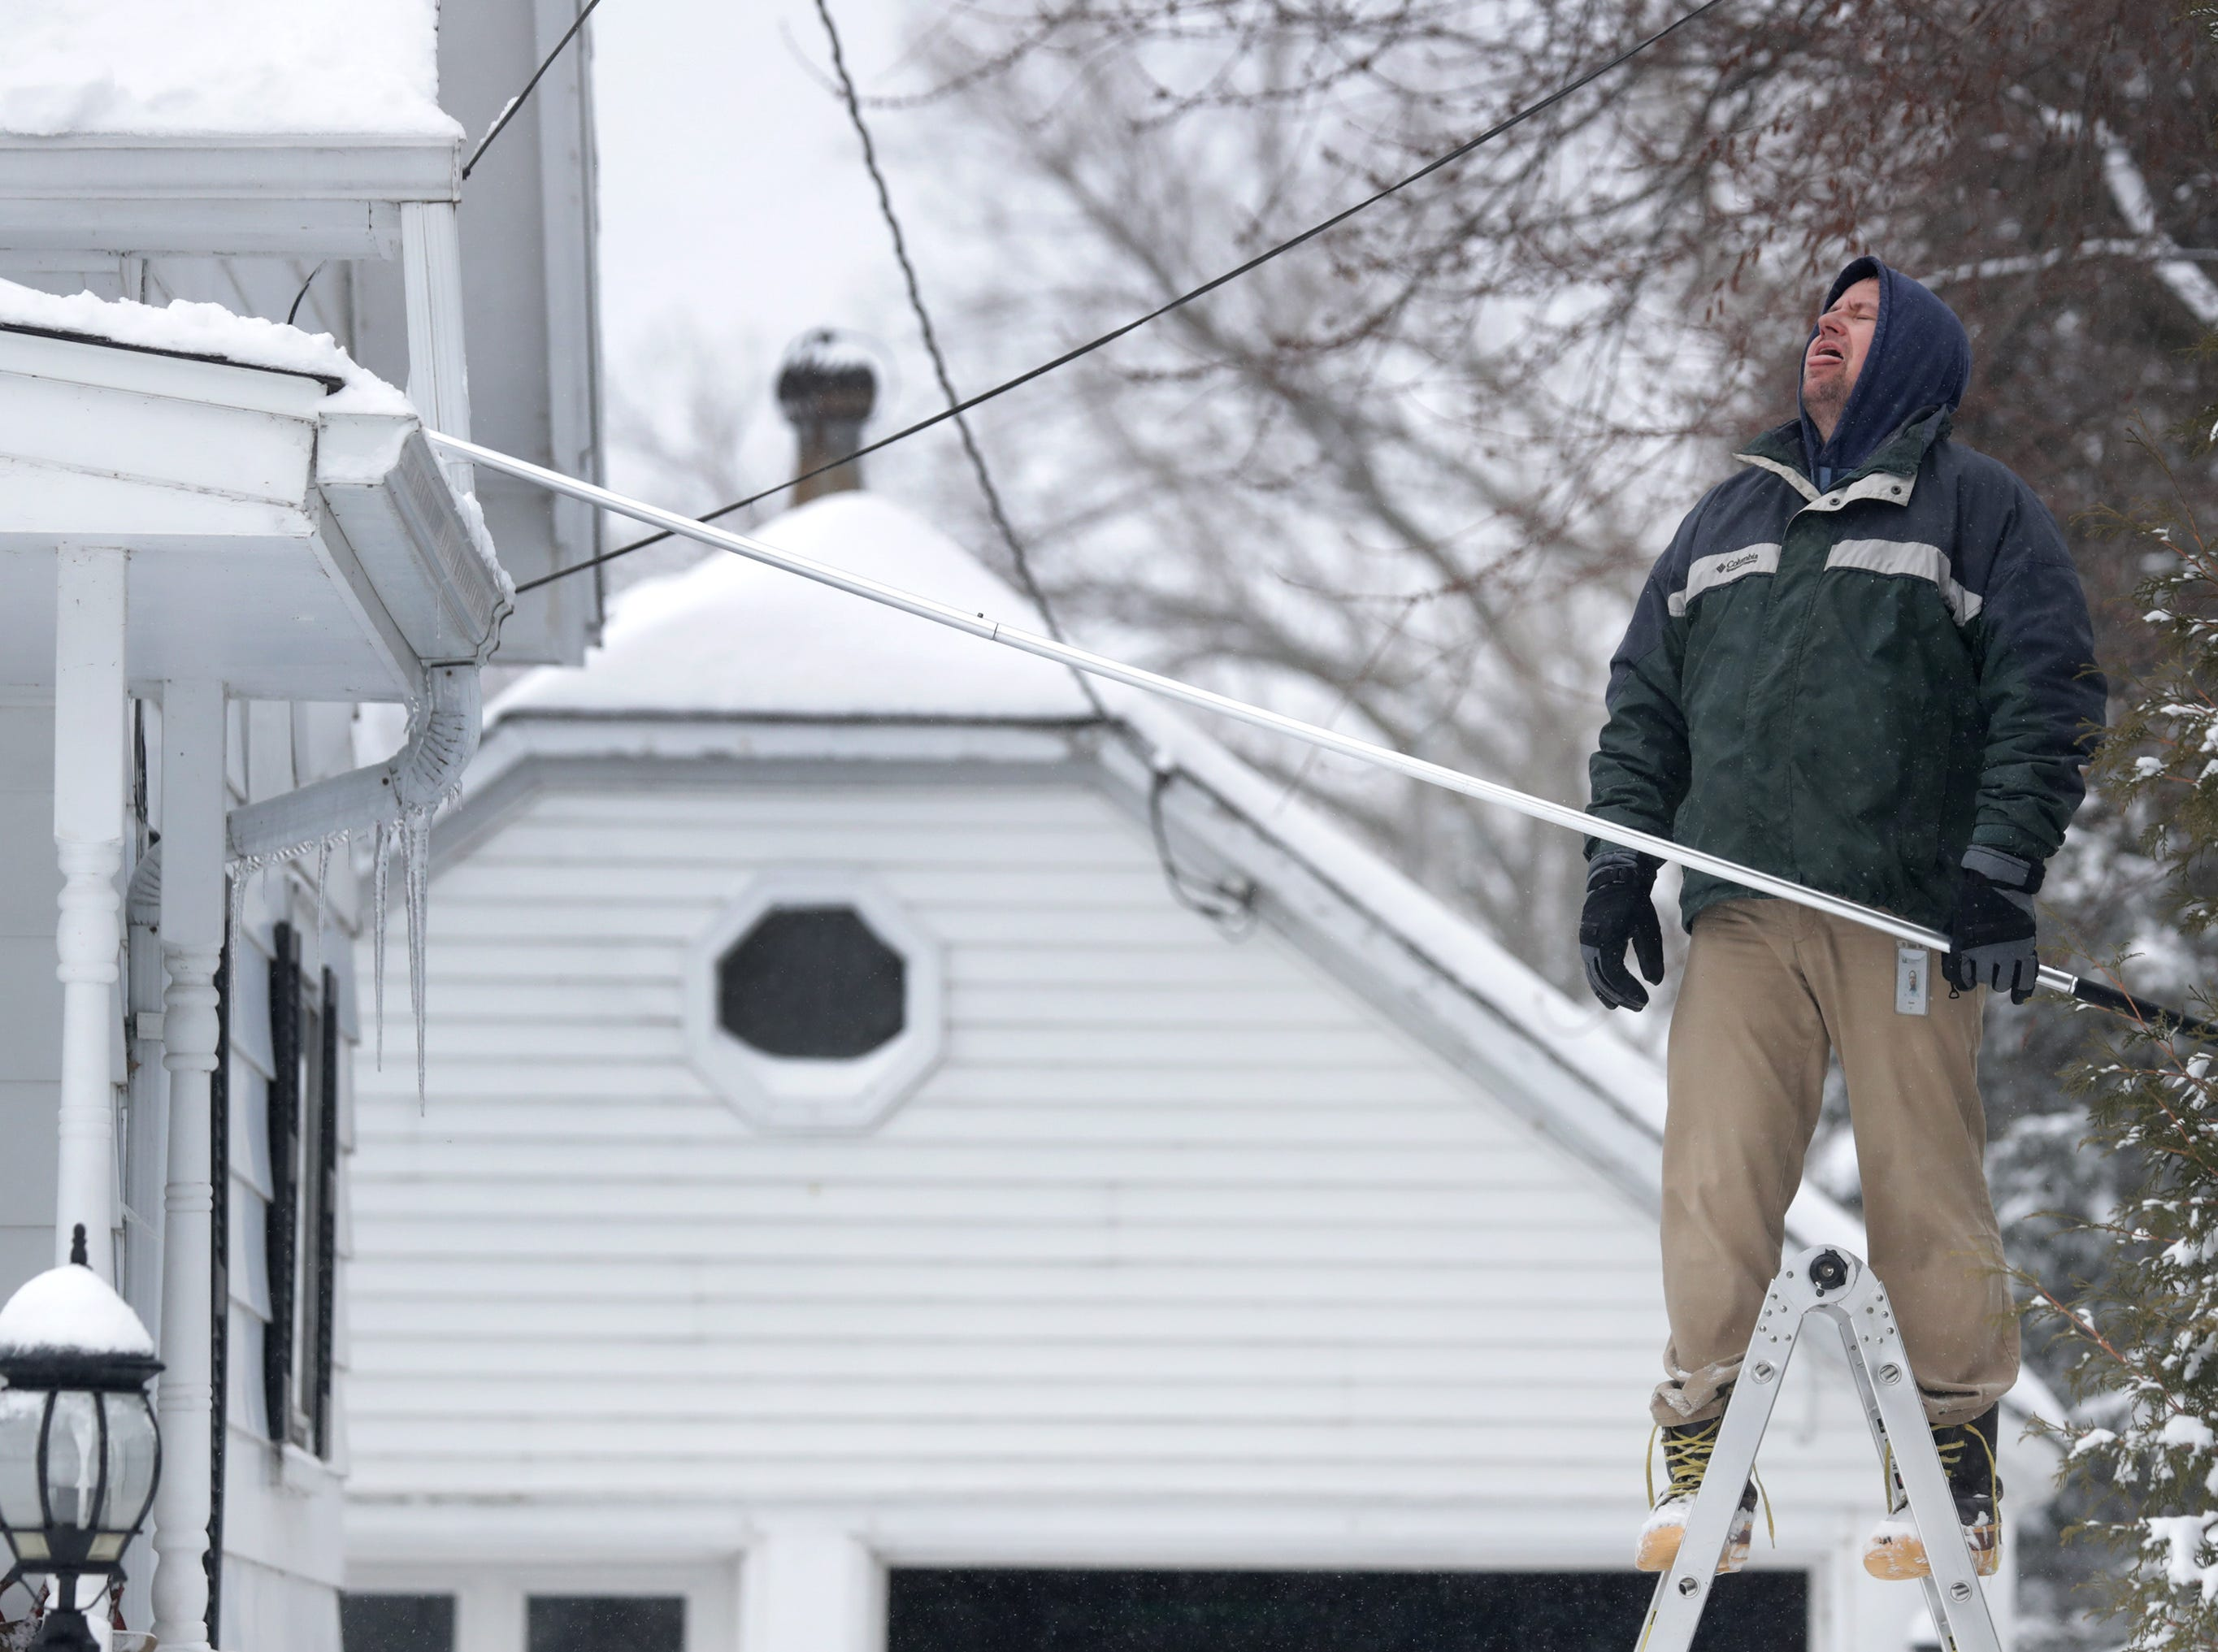 Jason Griffith takes a break from clearing snow off of the roof of his house and to catches a snowflake on his tongue on Tuesday, February 12, 2019, in Little Chute, Wis. The latest snow storm to move through the state dropped several inches of snow overnight, 6 to 12 inches are expected by Tuesday evening.